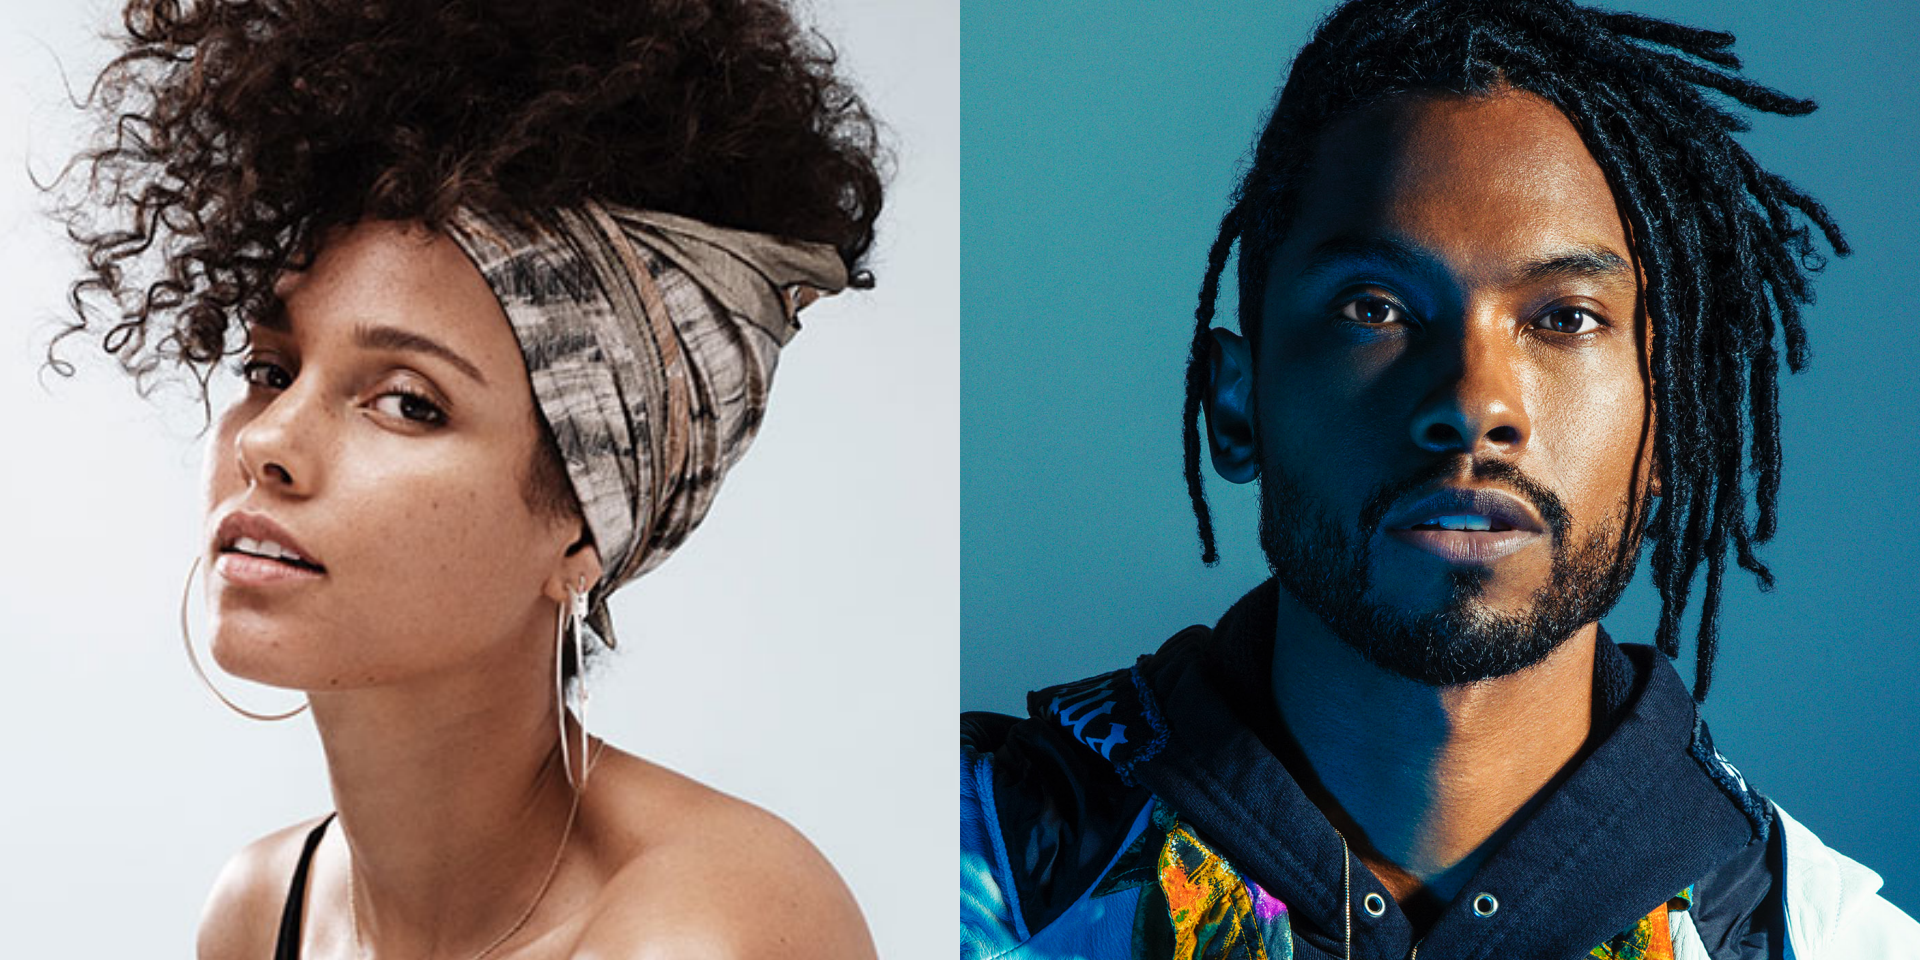 Alicia Keys and Miguel release tender new song 'Show Me Love' with music video